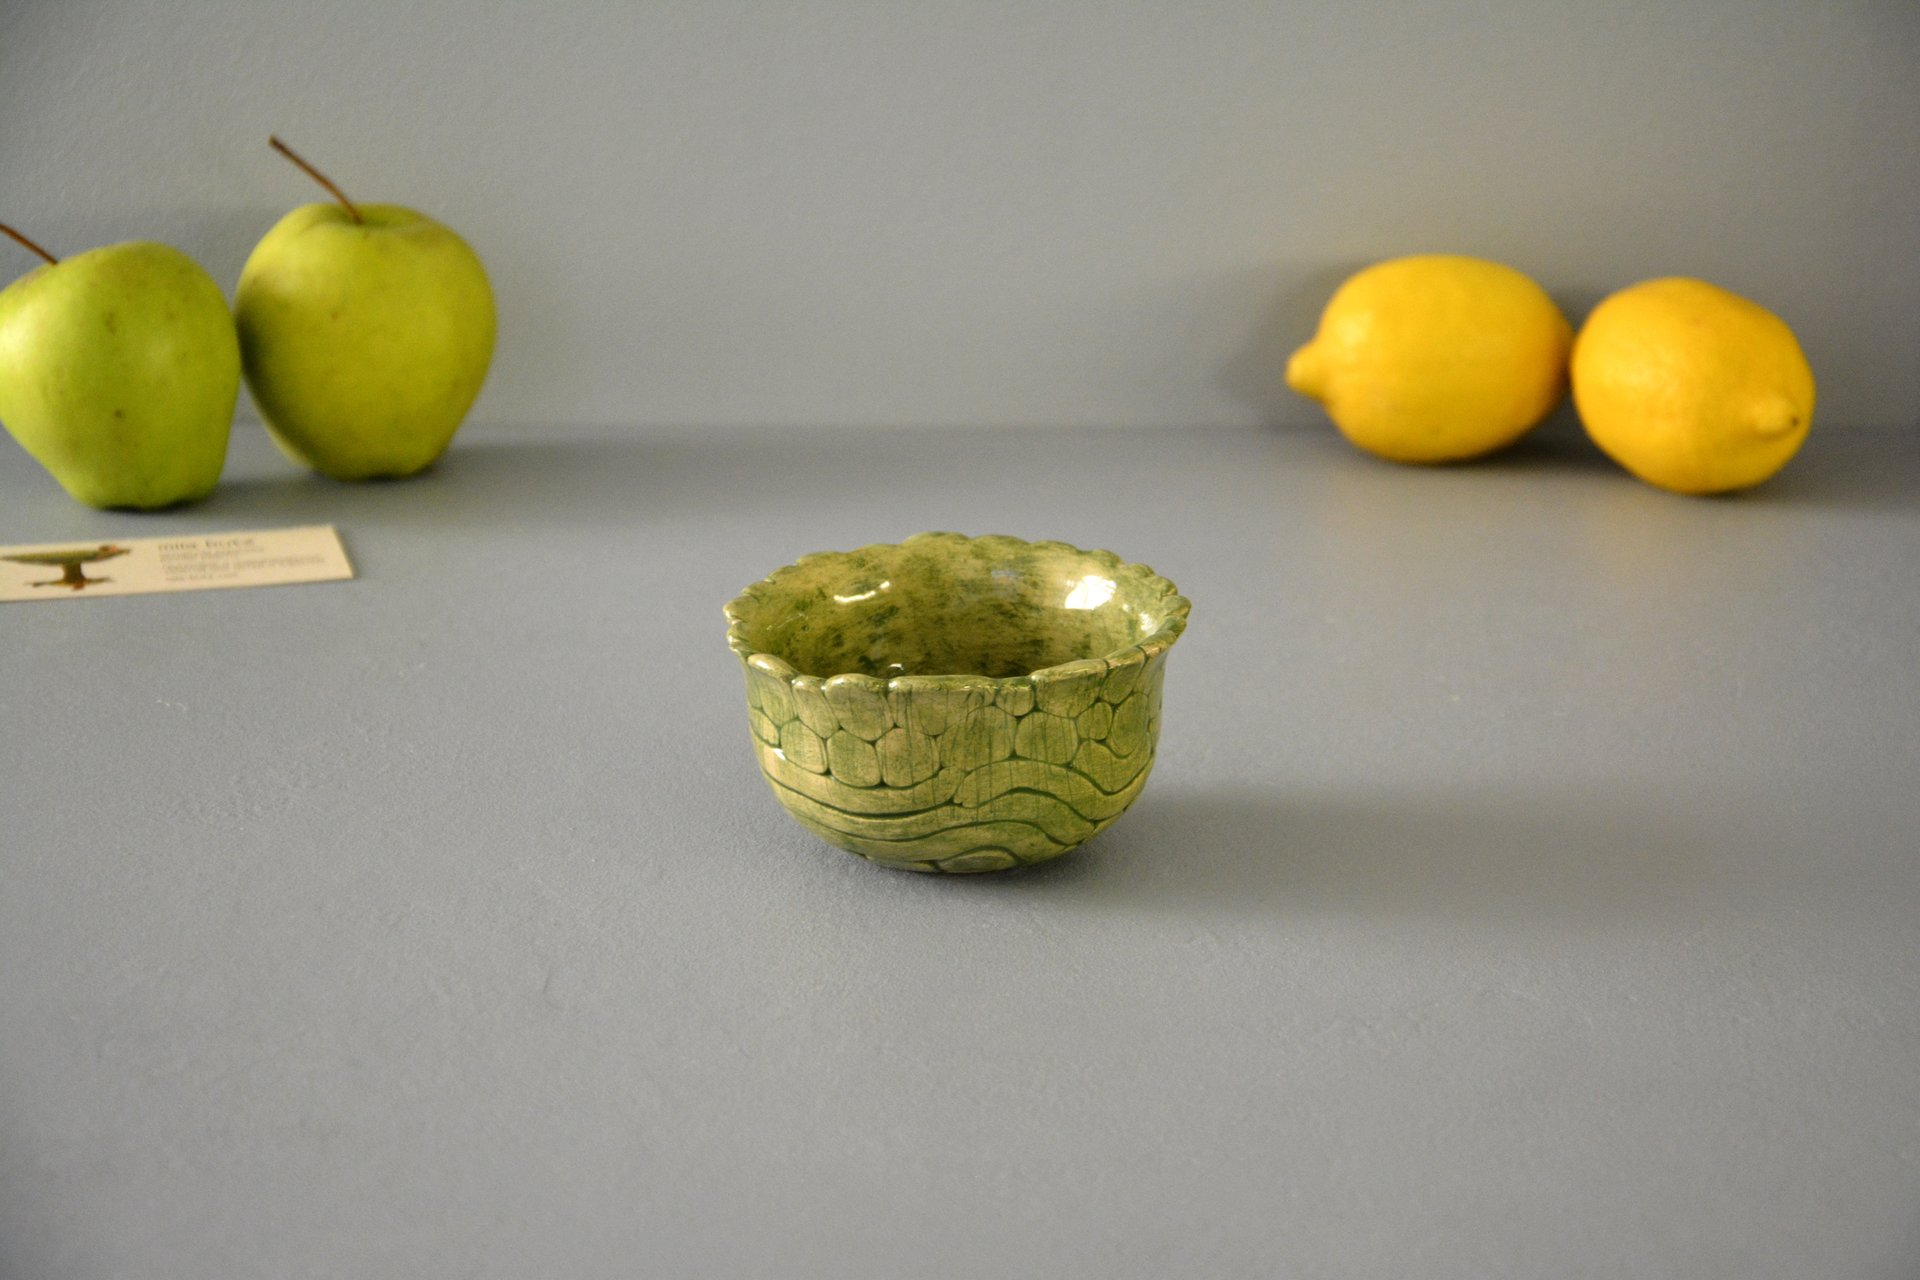 Green patina - Pialy and sauceboats, height - 5,5 cm, diameter - 10 cm, photo 1 of 3.